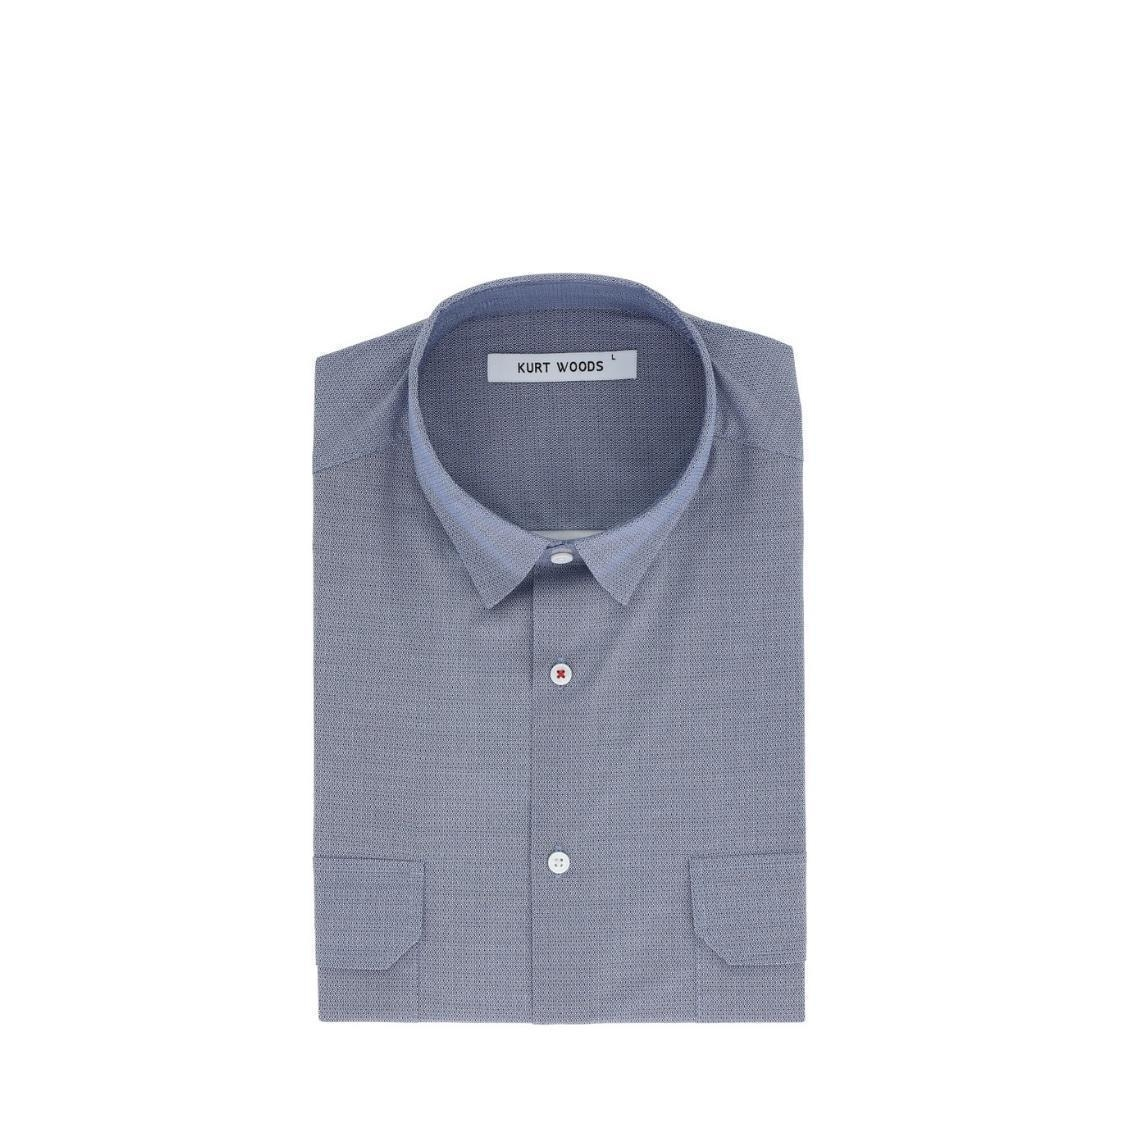 Short Sleeve Printed Slim Fit Cotton Shirt With Double Pocket